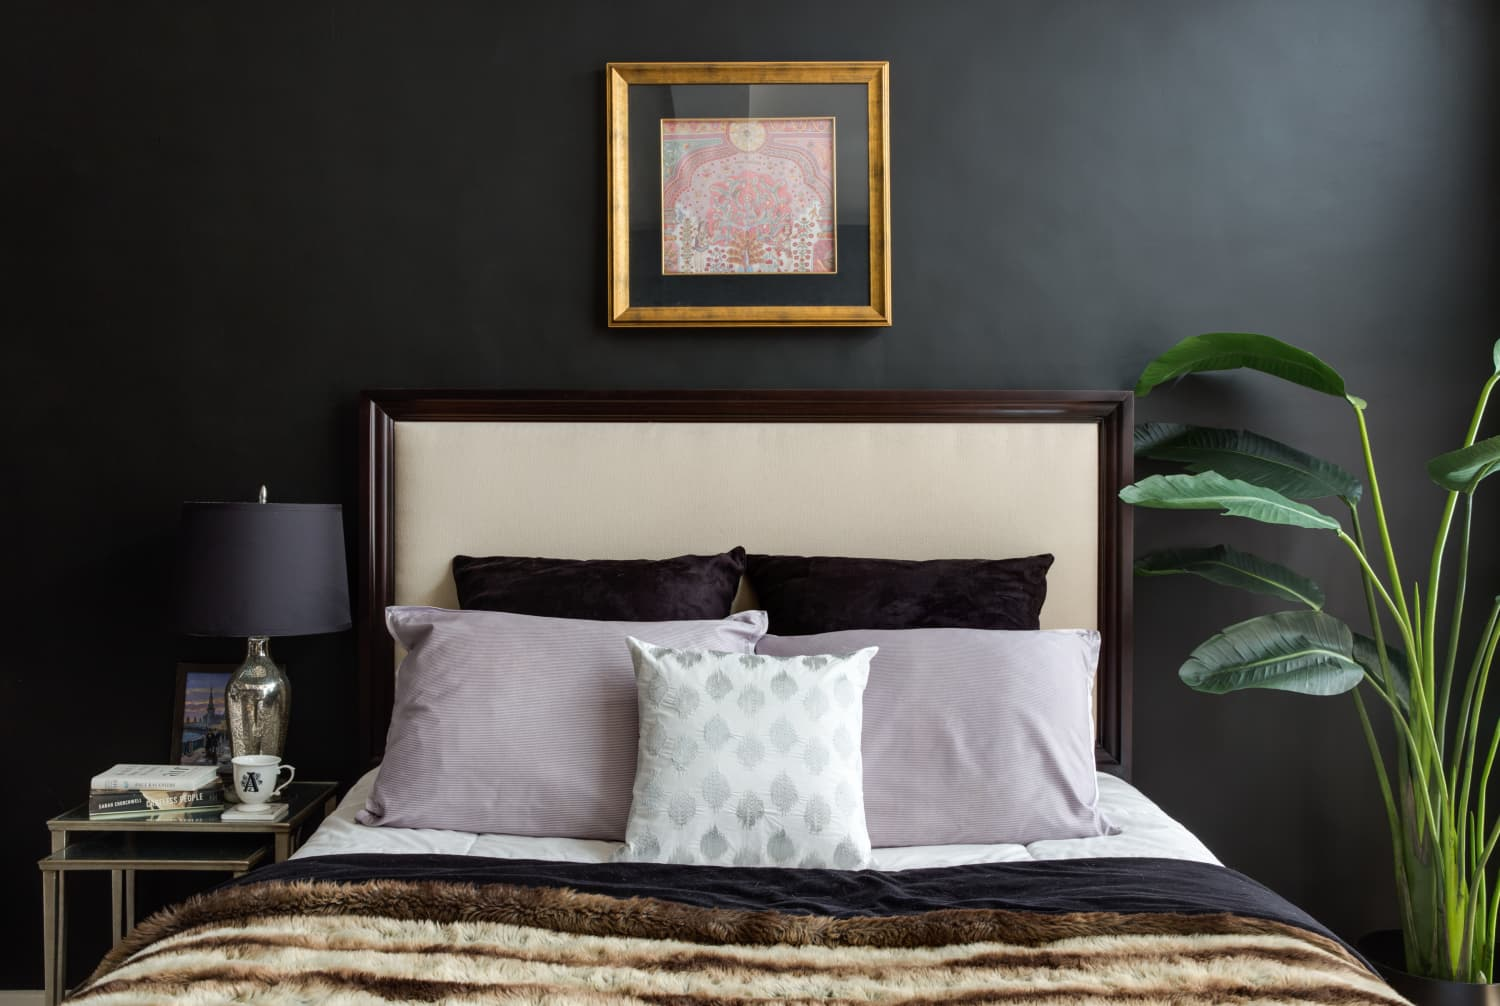 The Outdated Bedroom Trend Experts Hope to Never See Again